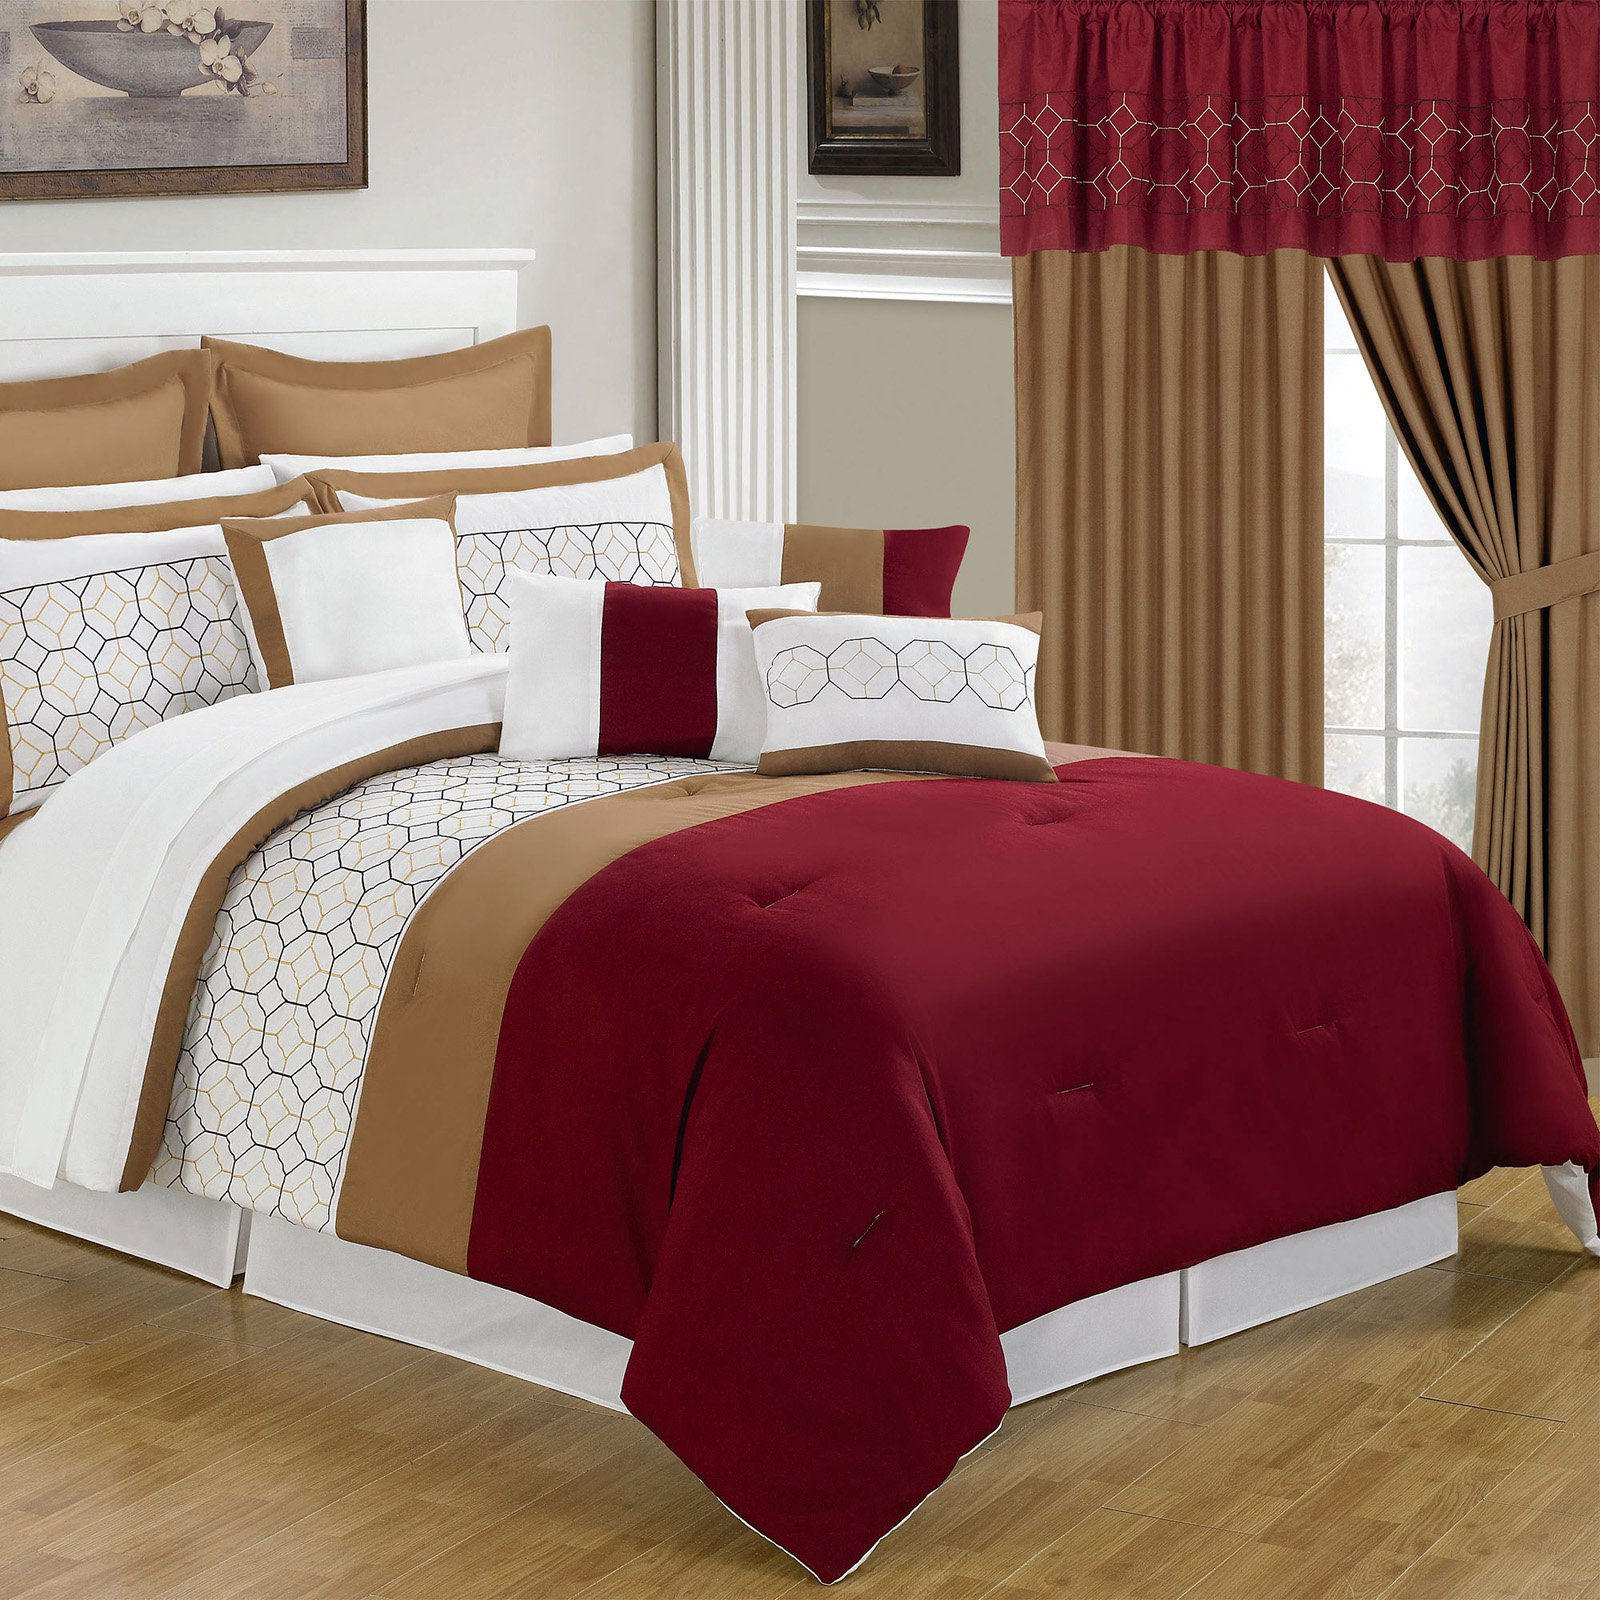 Lavish Home 25 Piece Room-In-A-Bag Sarah Bedroom Set